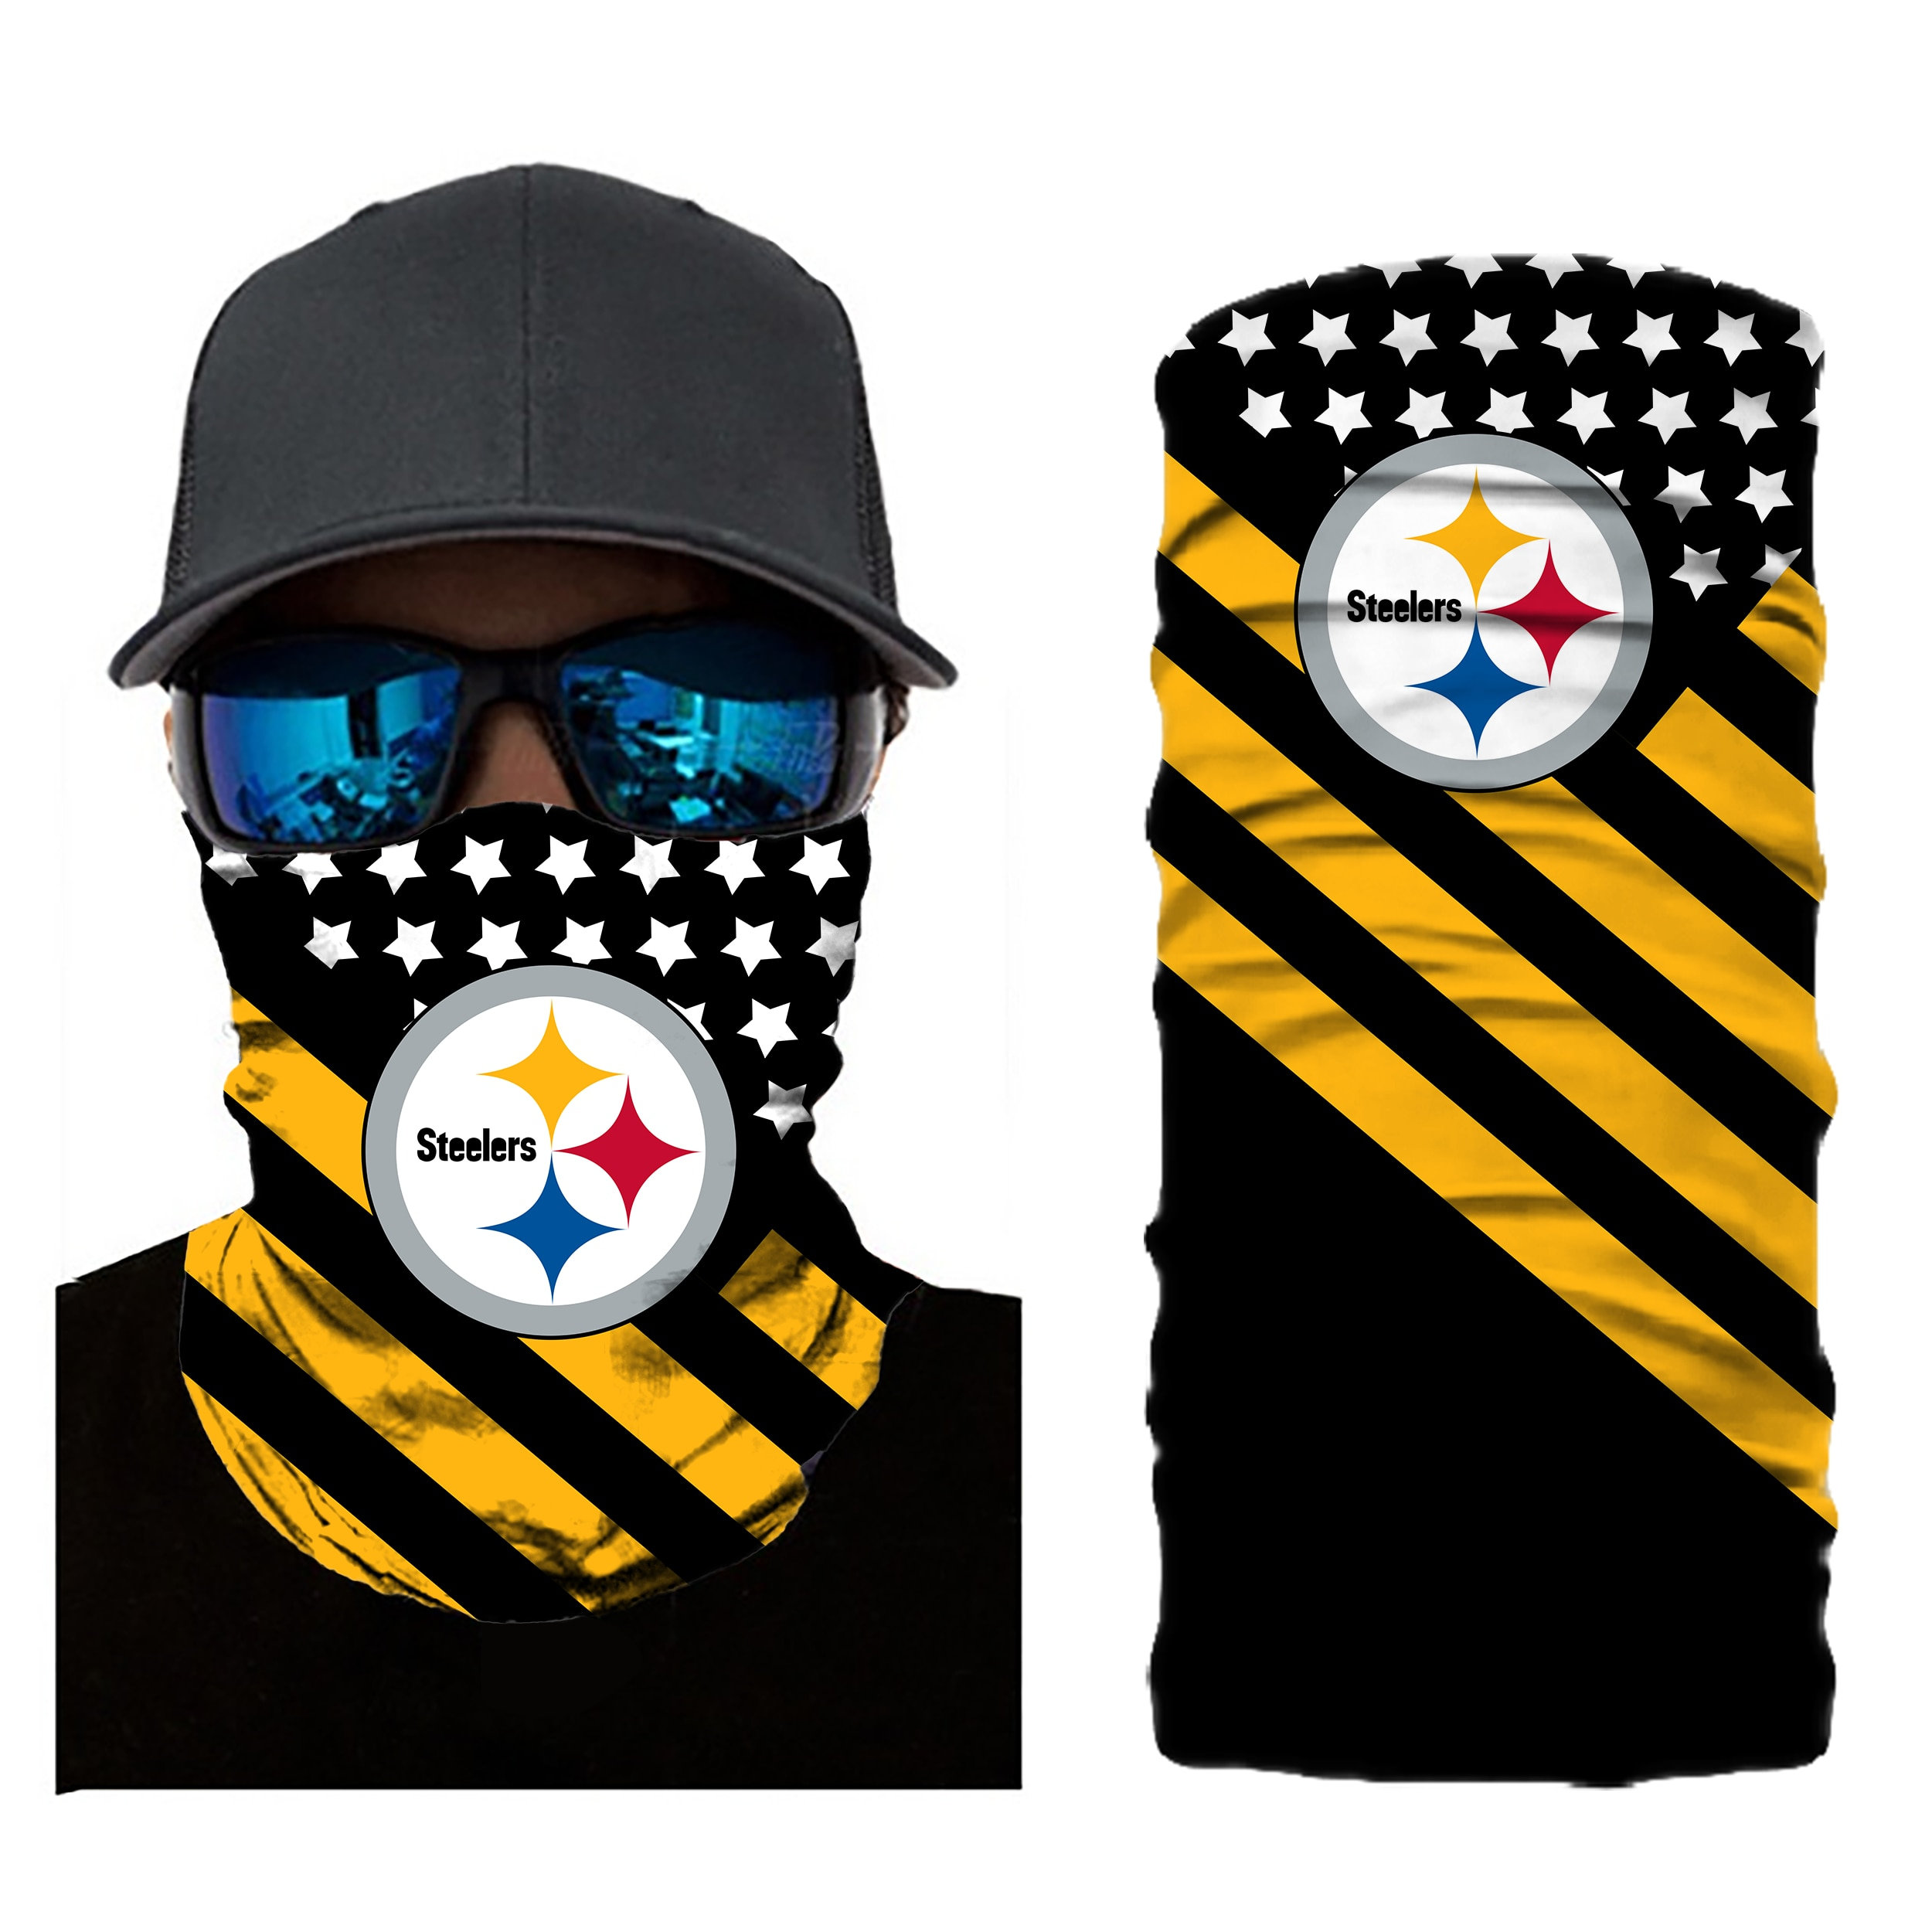 Steelers Kids Neck Gaiter Summer Bandana Cool mask Face Covering for Outdoors Sports Running mask